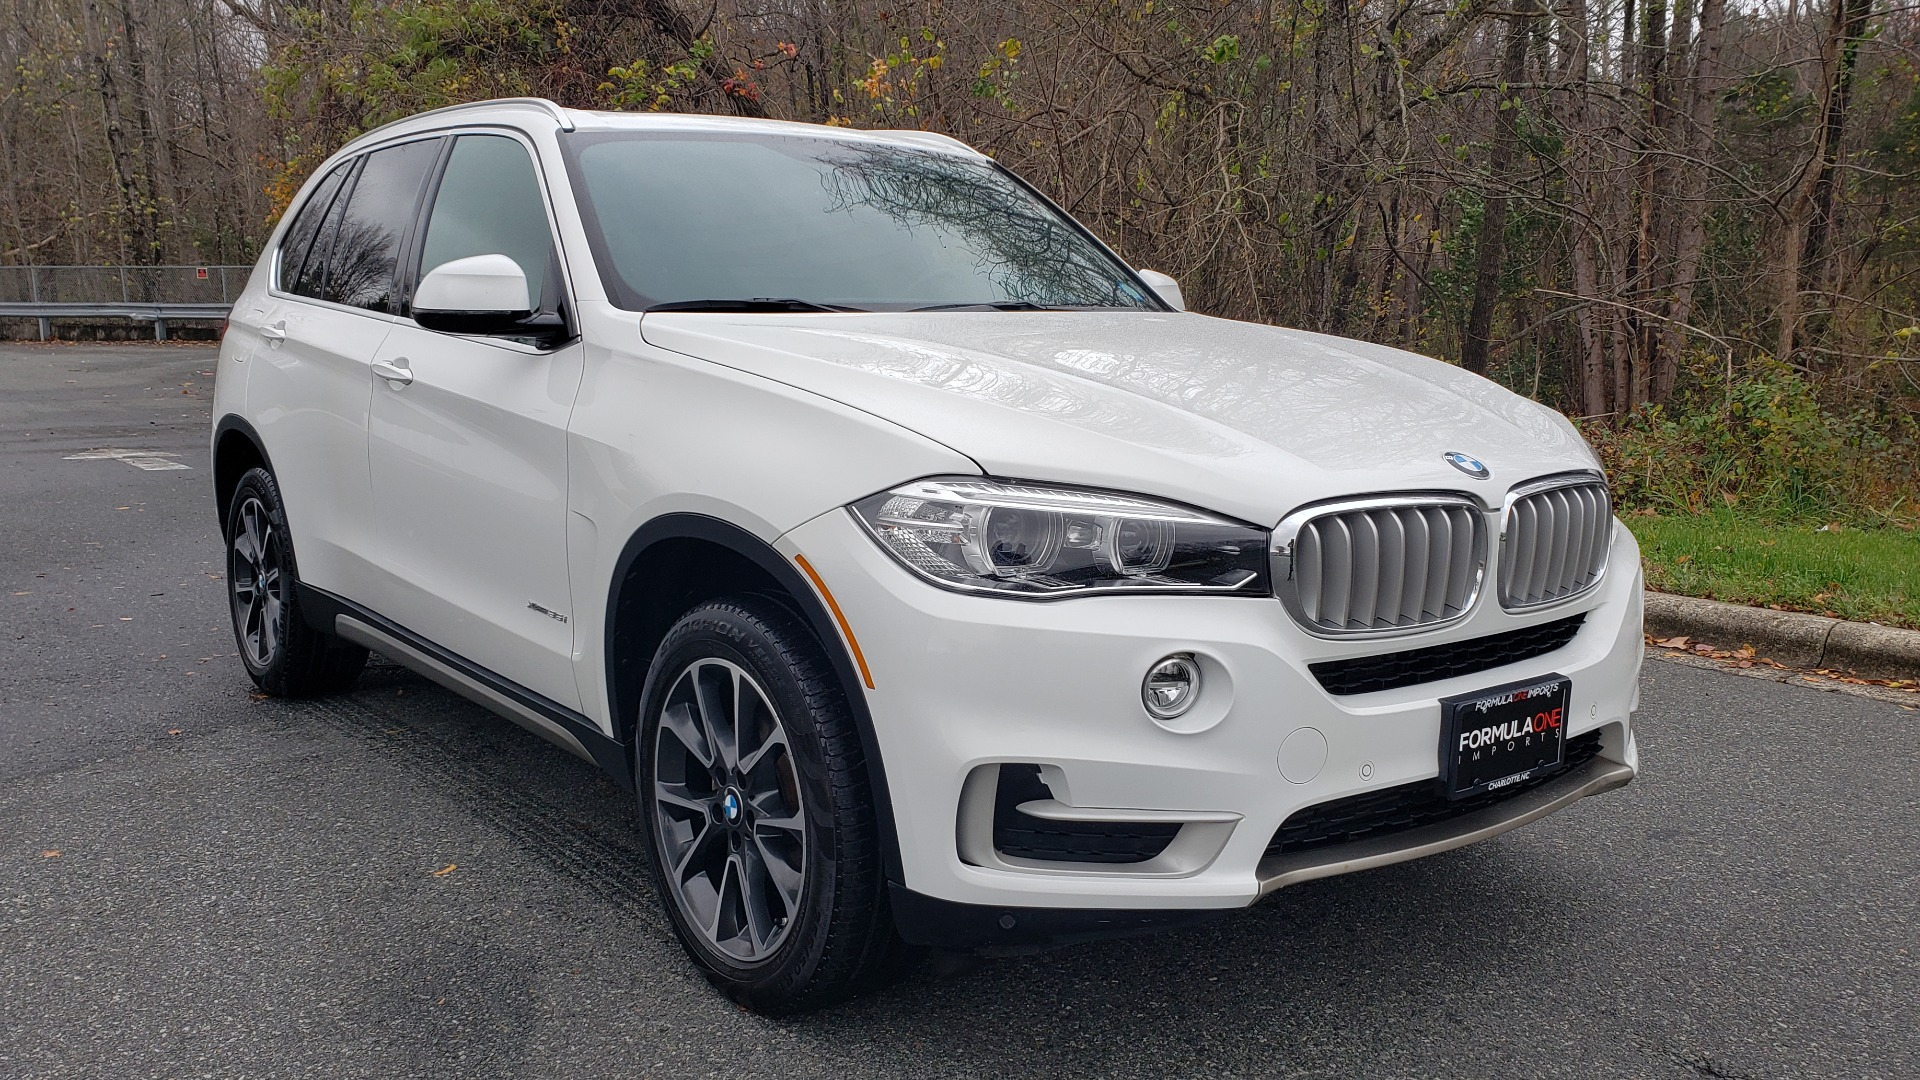 Used 2018 BMW X5 XDRIVE35I / AWD / NAV / HTD STS / SUNROOF / REARVIEW for sale Sold at Formula Imports in Charlotte NC 28227 4